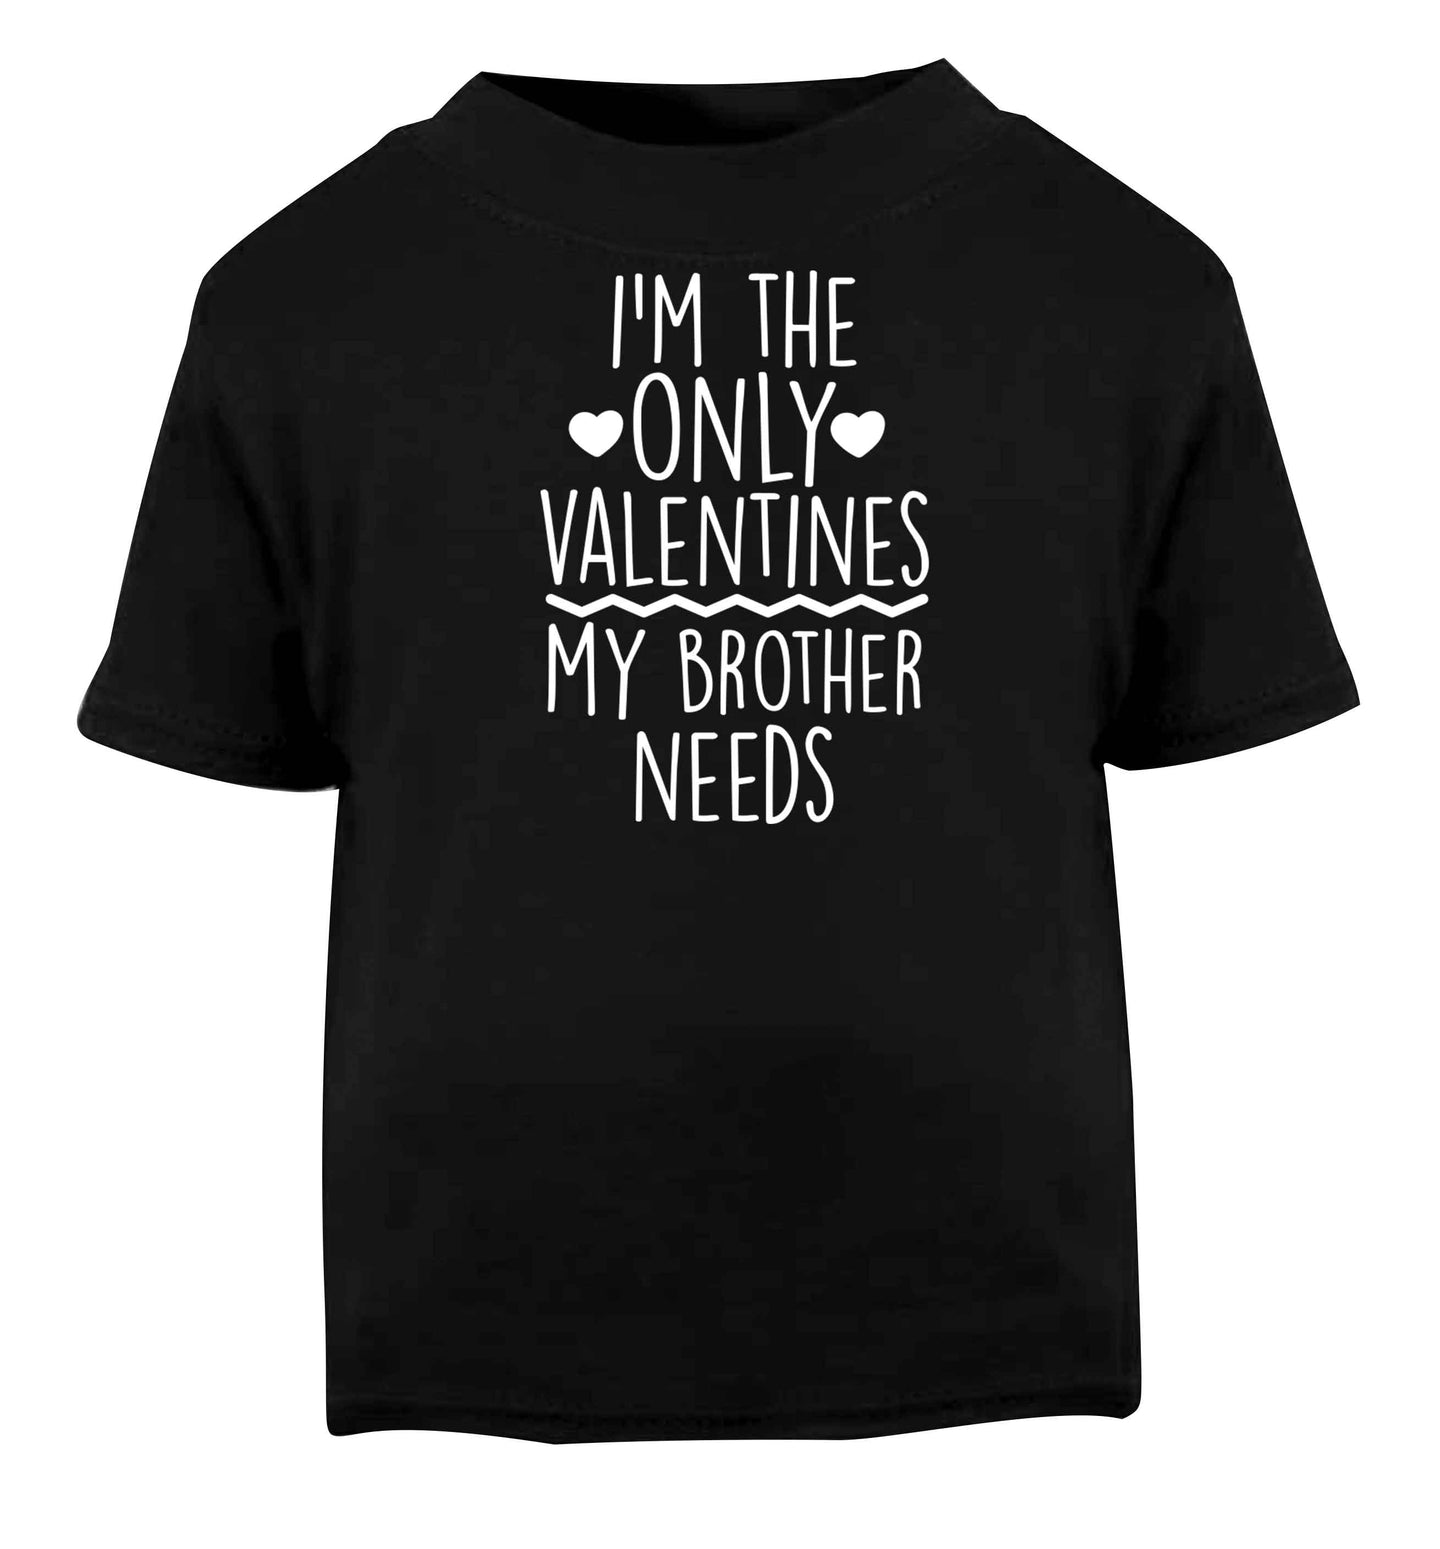 I'm the only valentines my brother needs Black baby toddler Tshirt 2 years